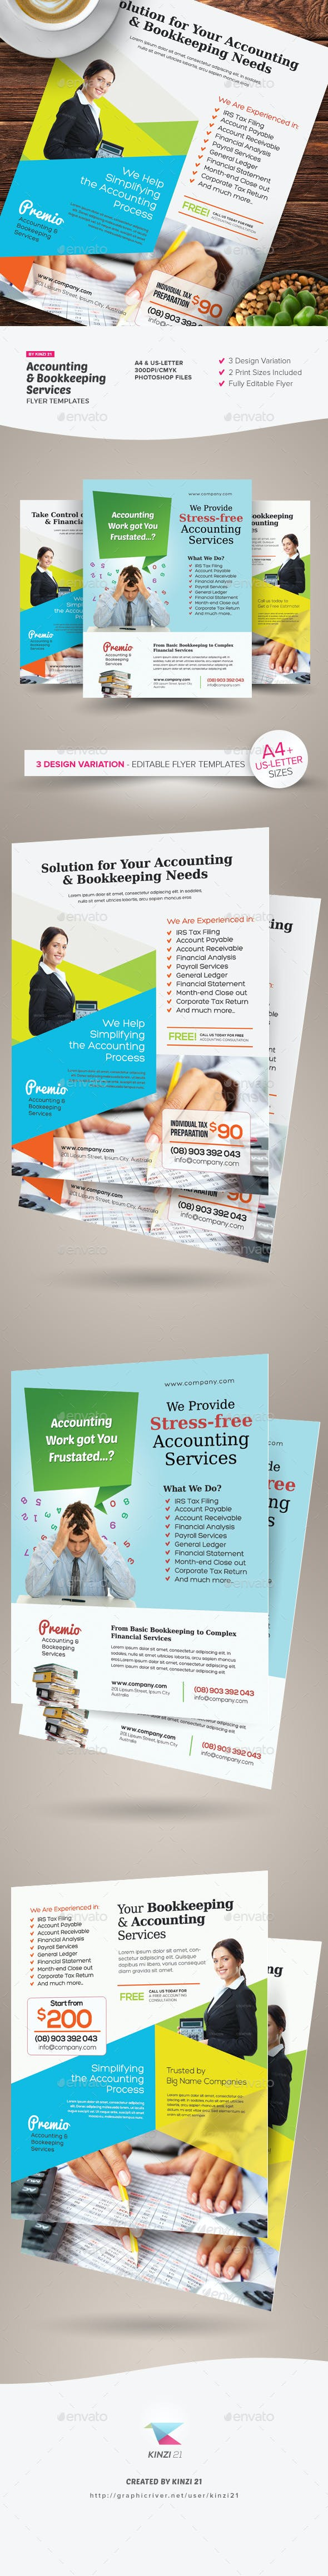 Template Cover Letter Accounting Graphic River And Bookkeeping Services Flyers Kinzi Ecyvmk on